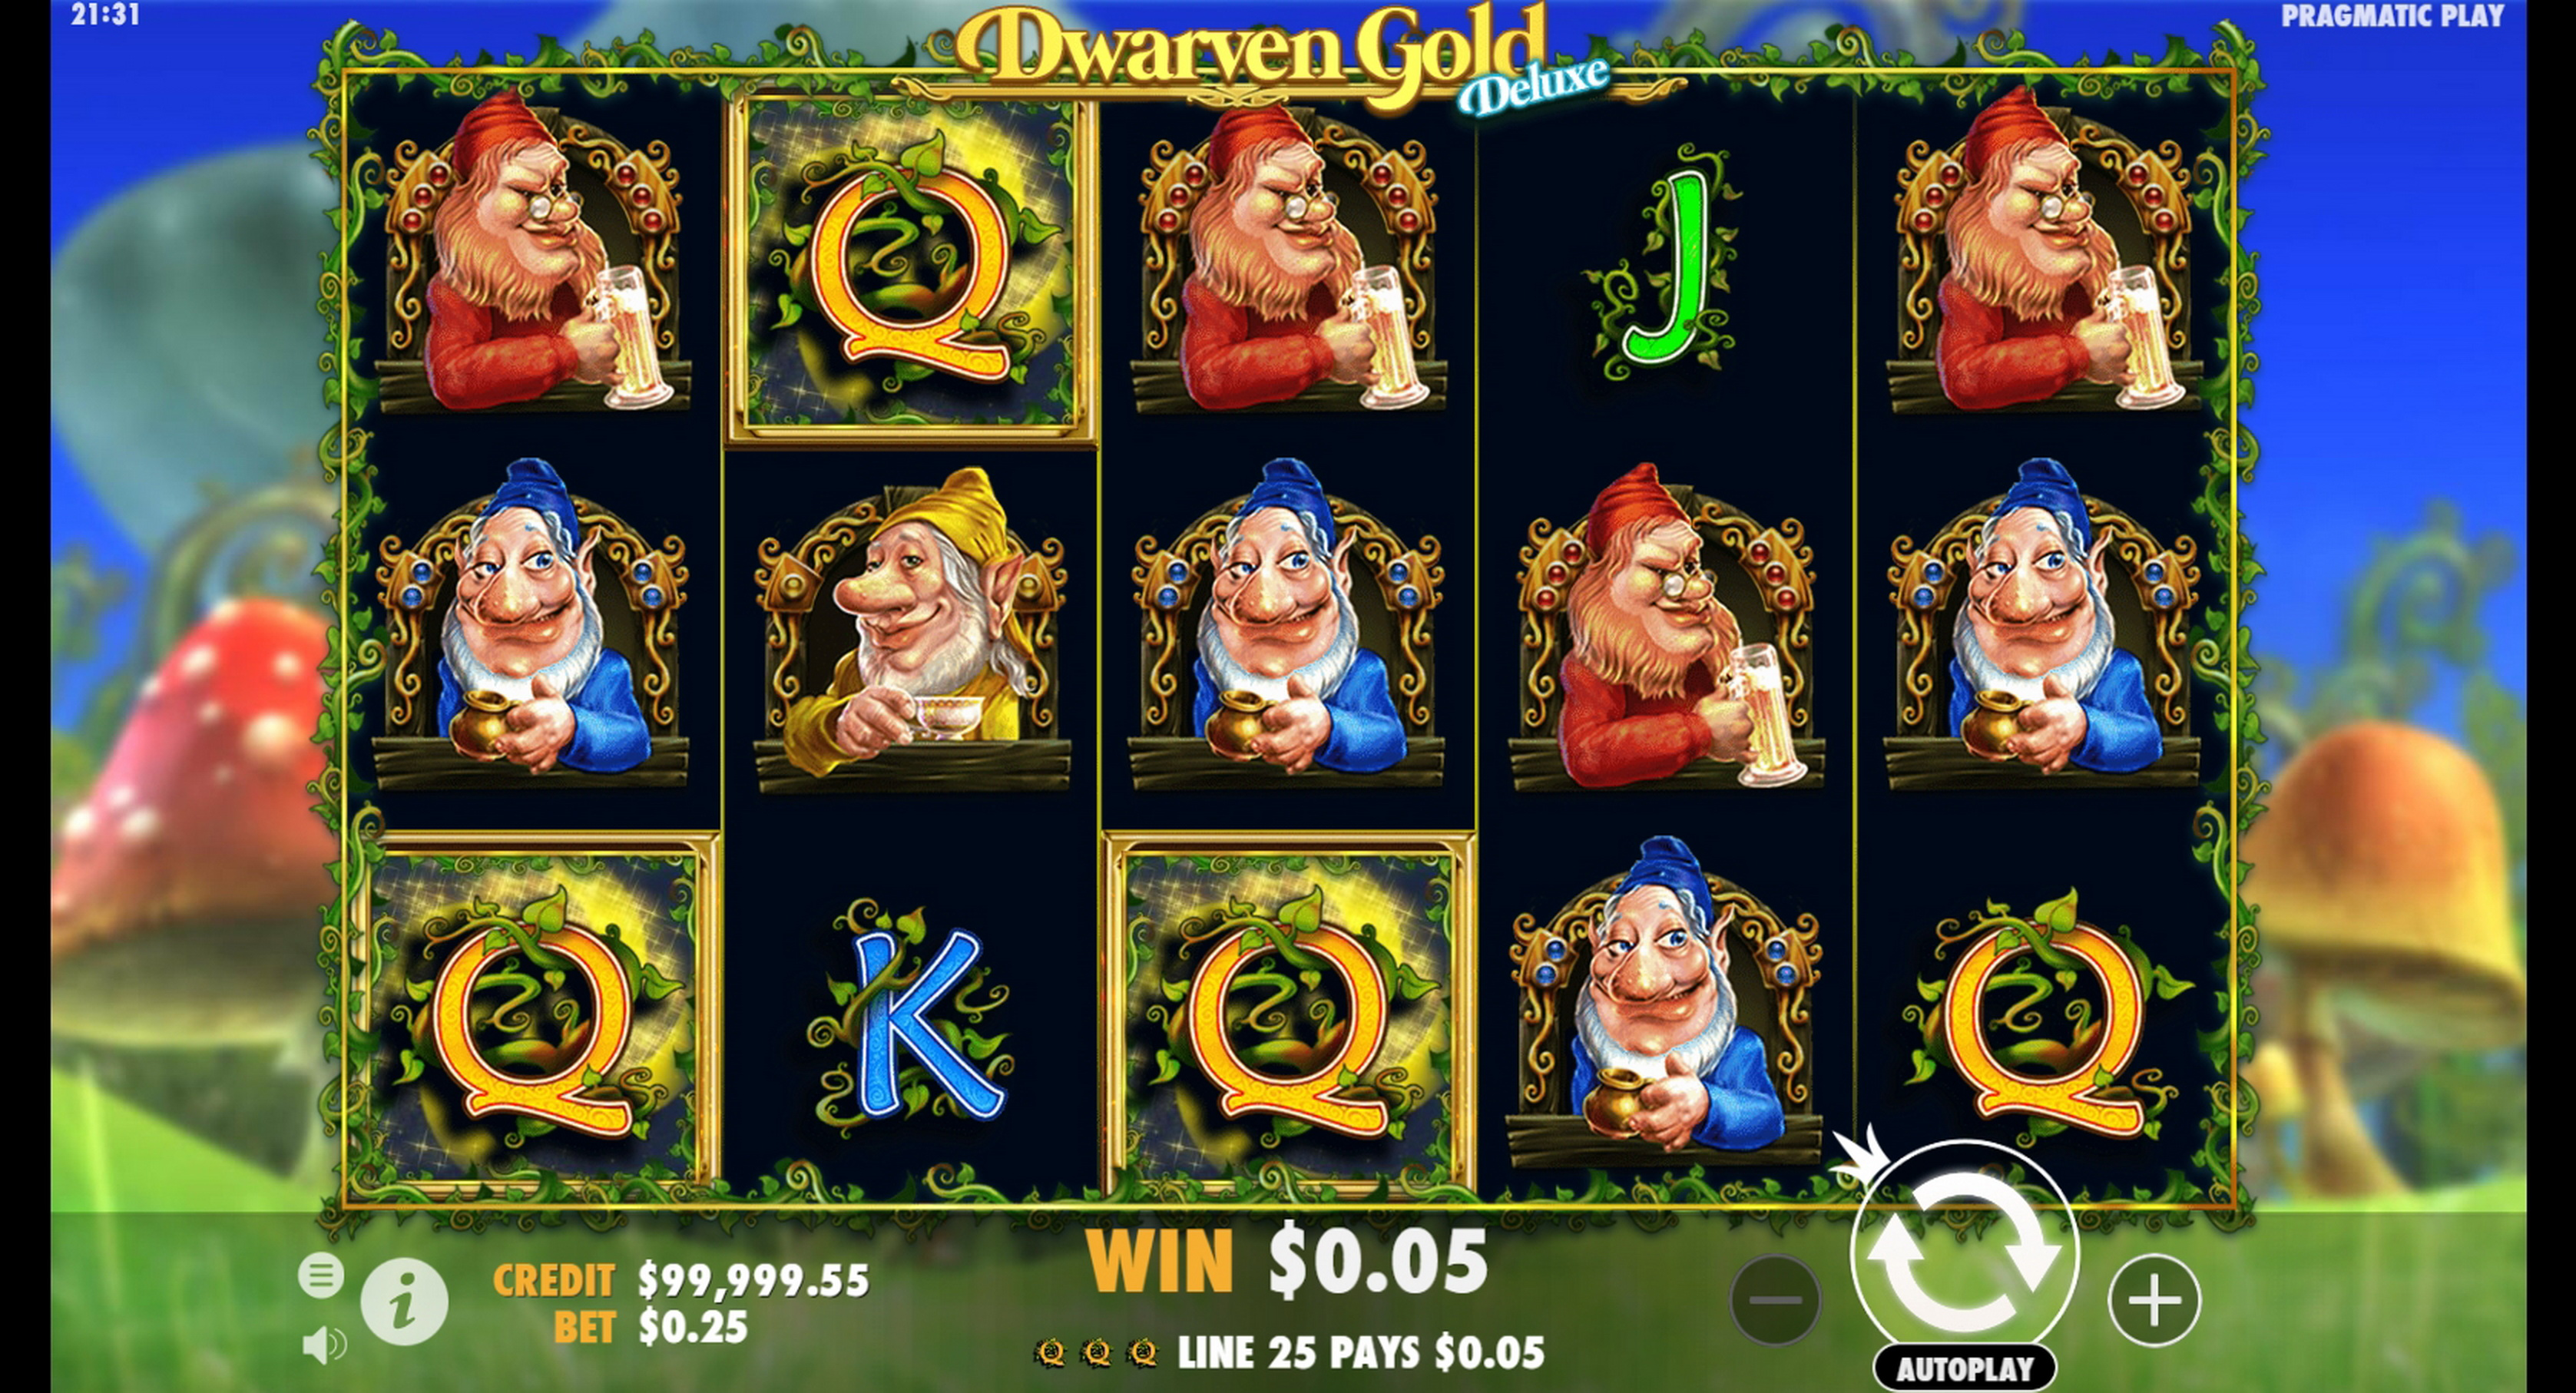 Win Money in Dwarven Gold Deluxe Free Slot Game by Pragmatic Play